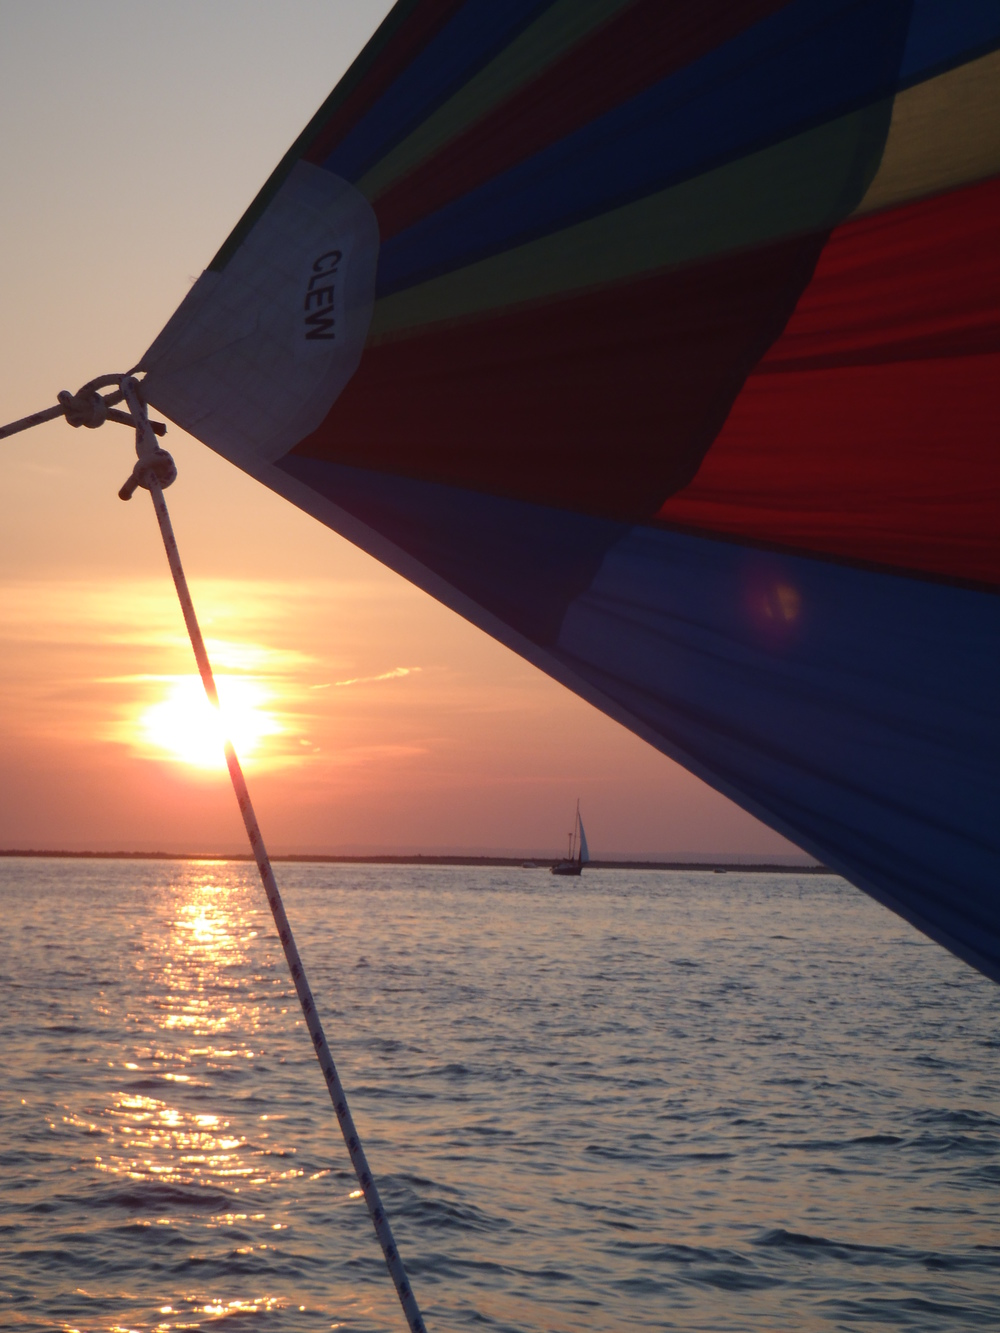 The Asymmetrical Spinnaker's Clew caught with the setting sun on the placid waters of Northport Harbor.